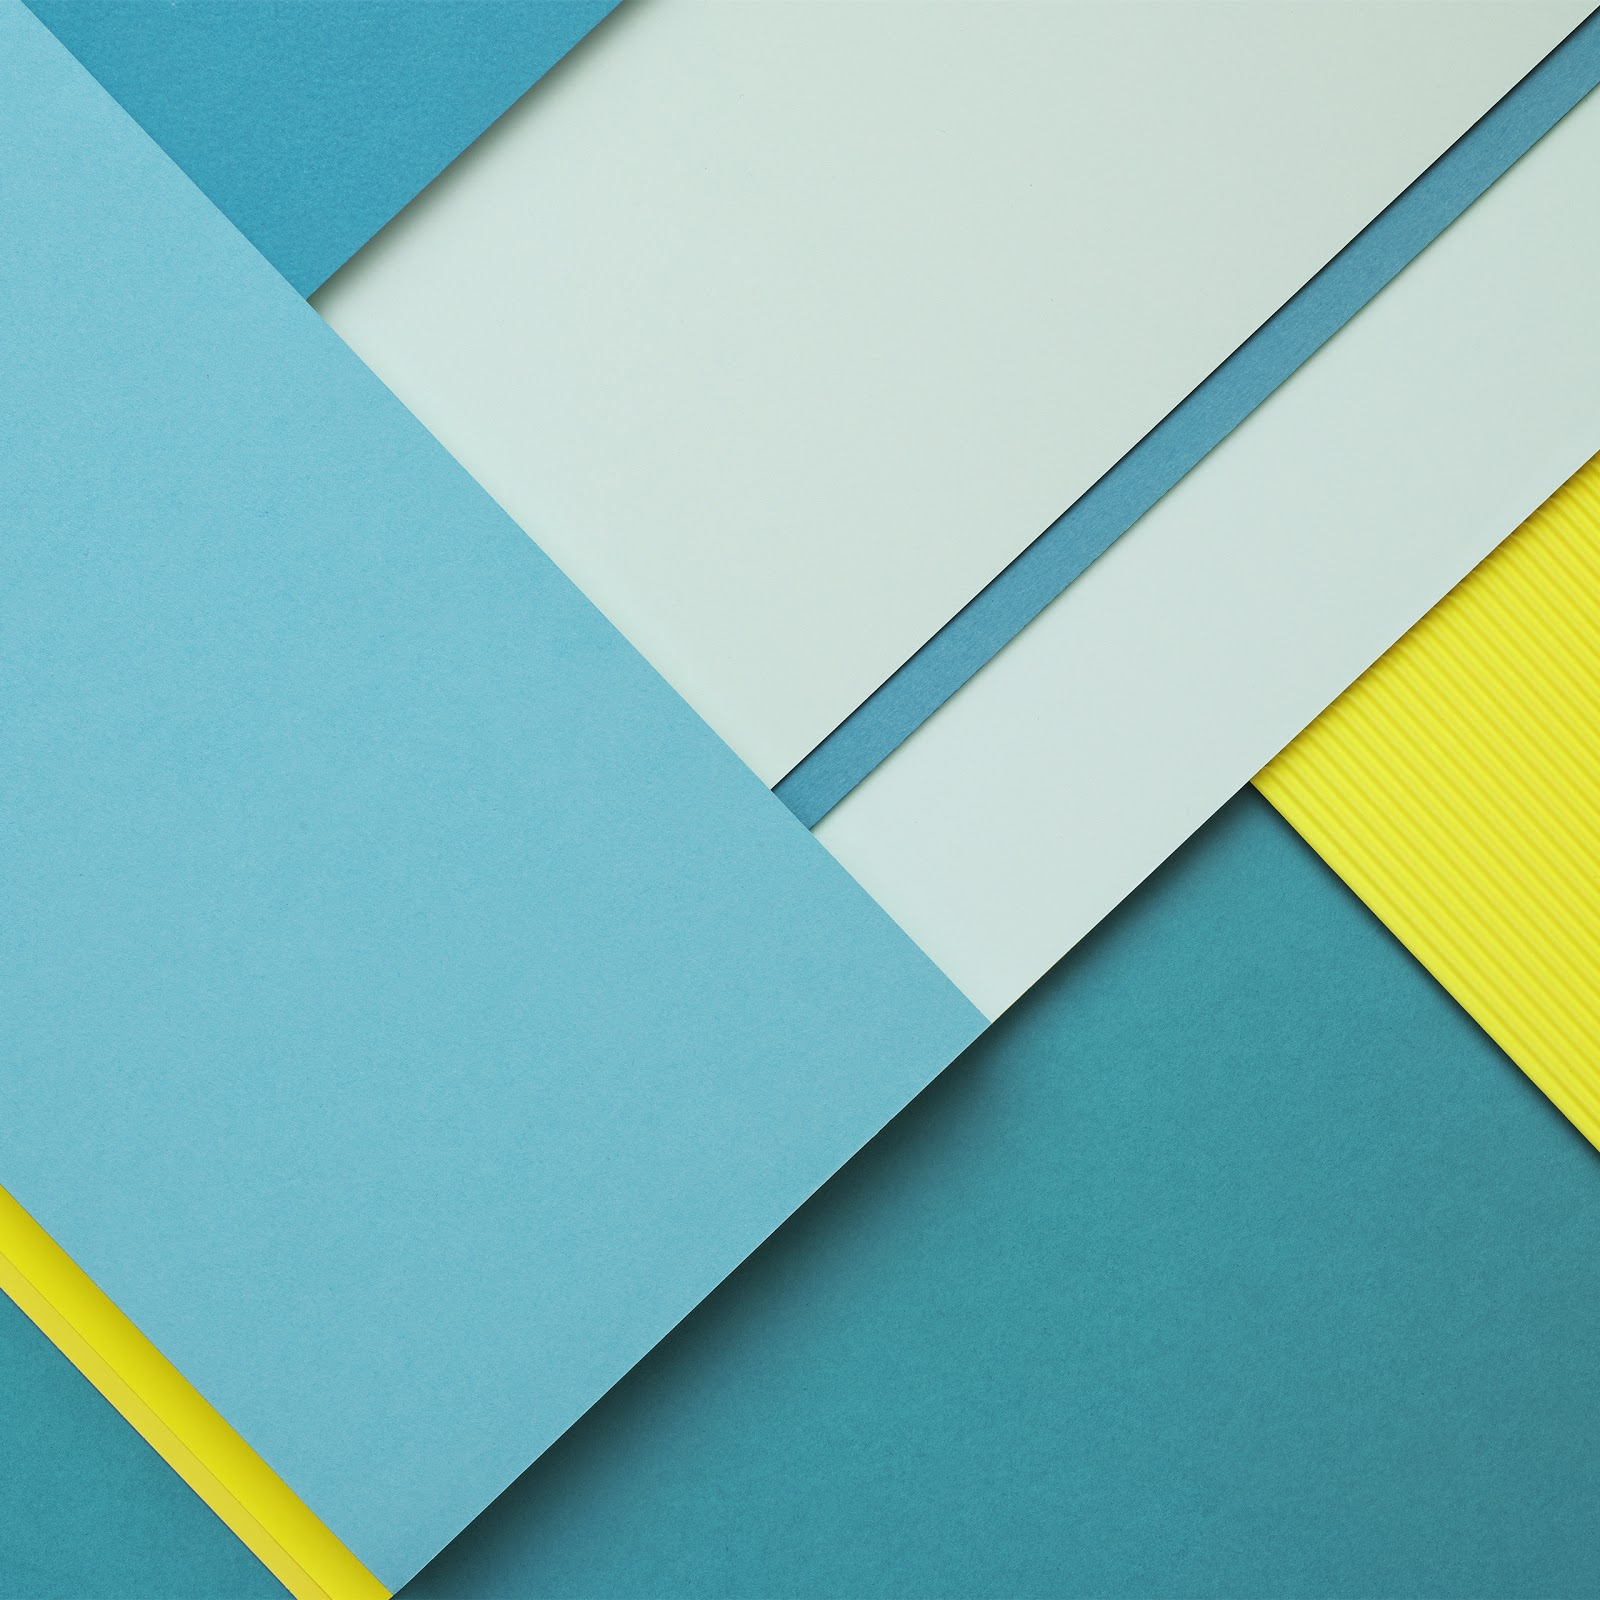 141 Awesome Material Design Wallpapers. : Android